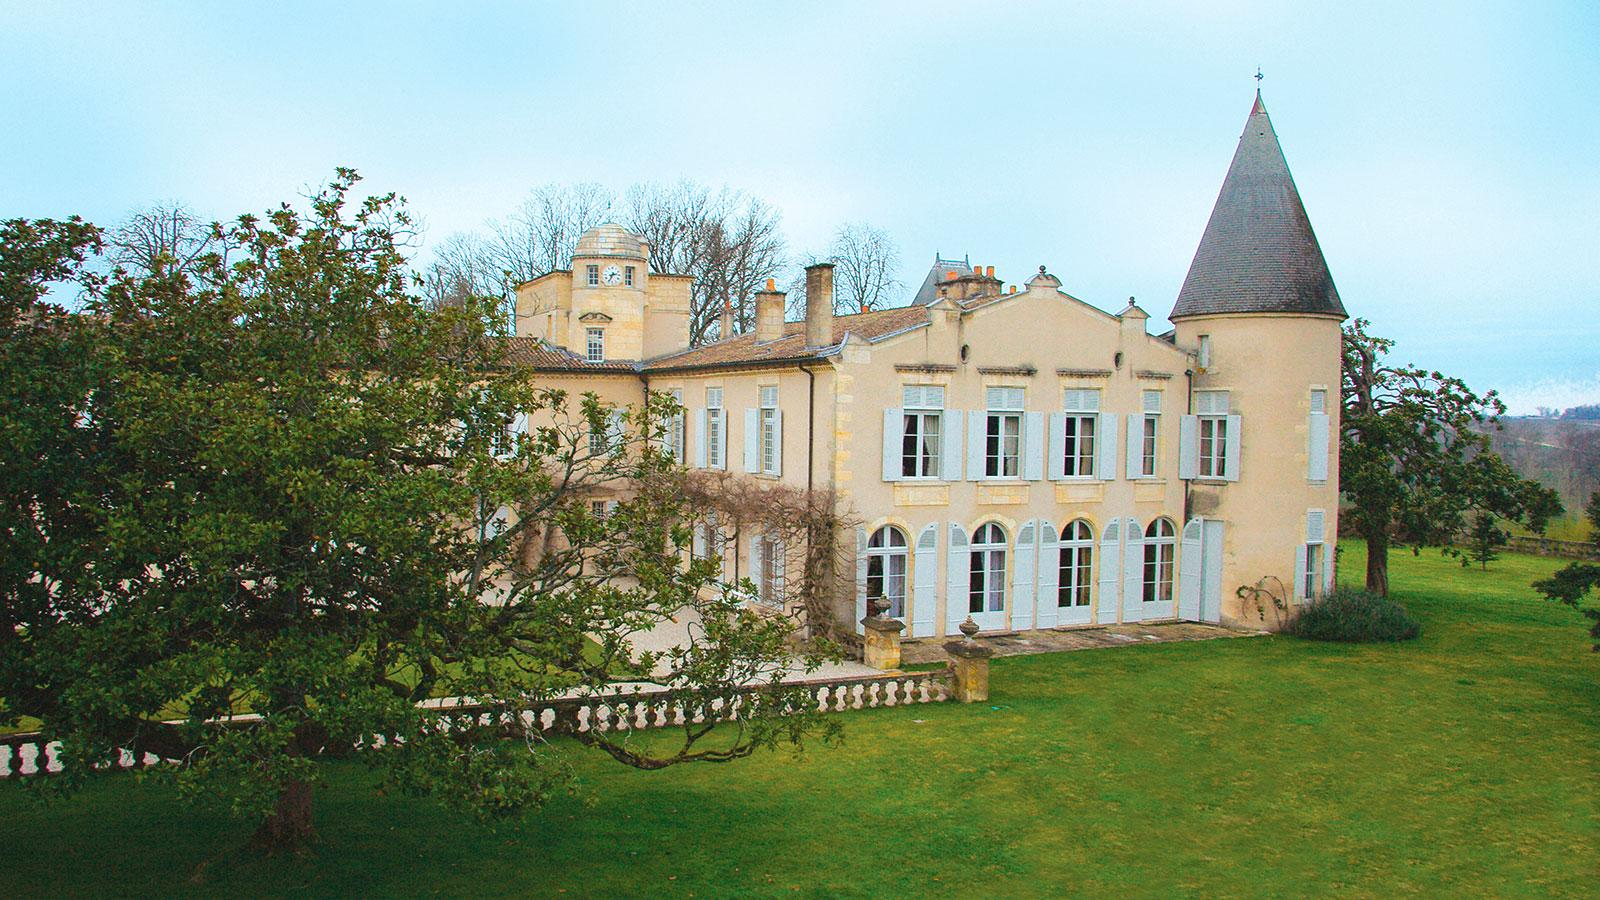 Beautiful harvesstime weather allowed Lafite Rothschild director Charles Chevalier to wait for full ripeness.